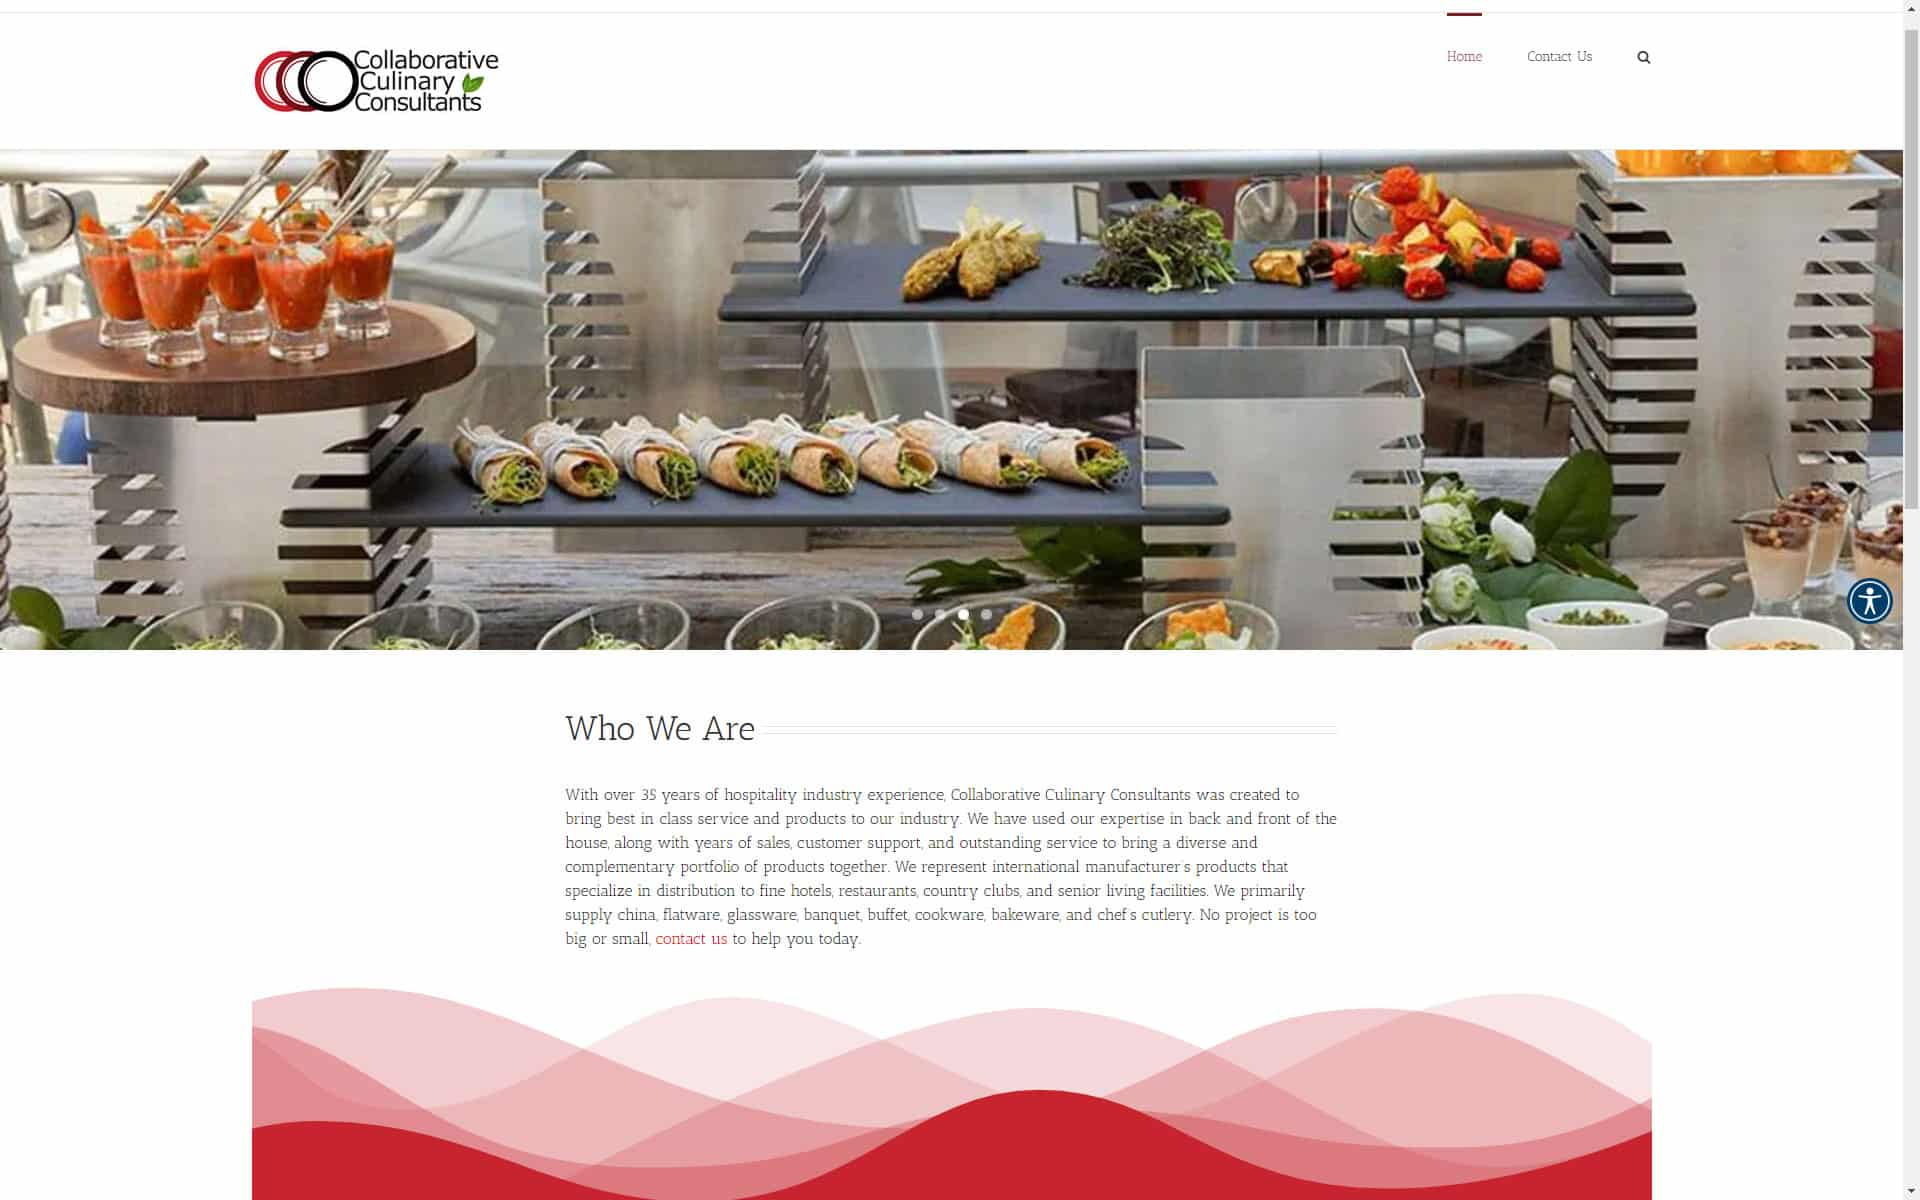 Collaborative Culinary Consultants